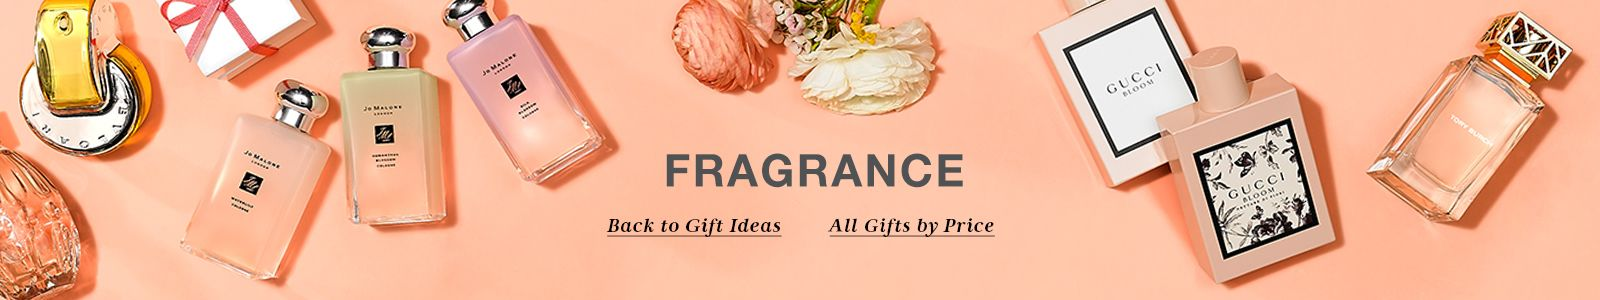 Fragrance, Back to Gift Ideas, All Gifts by Price